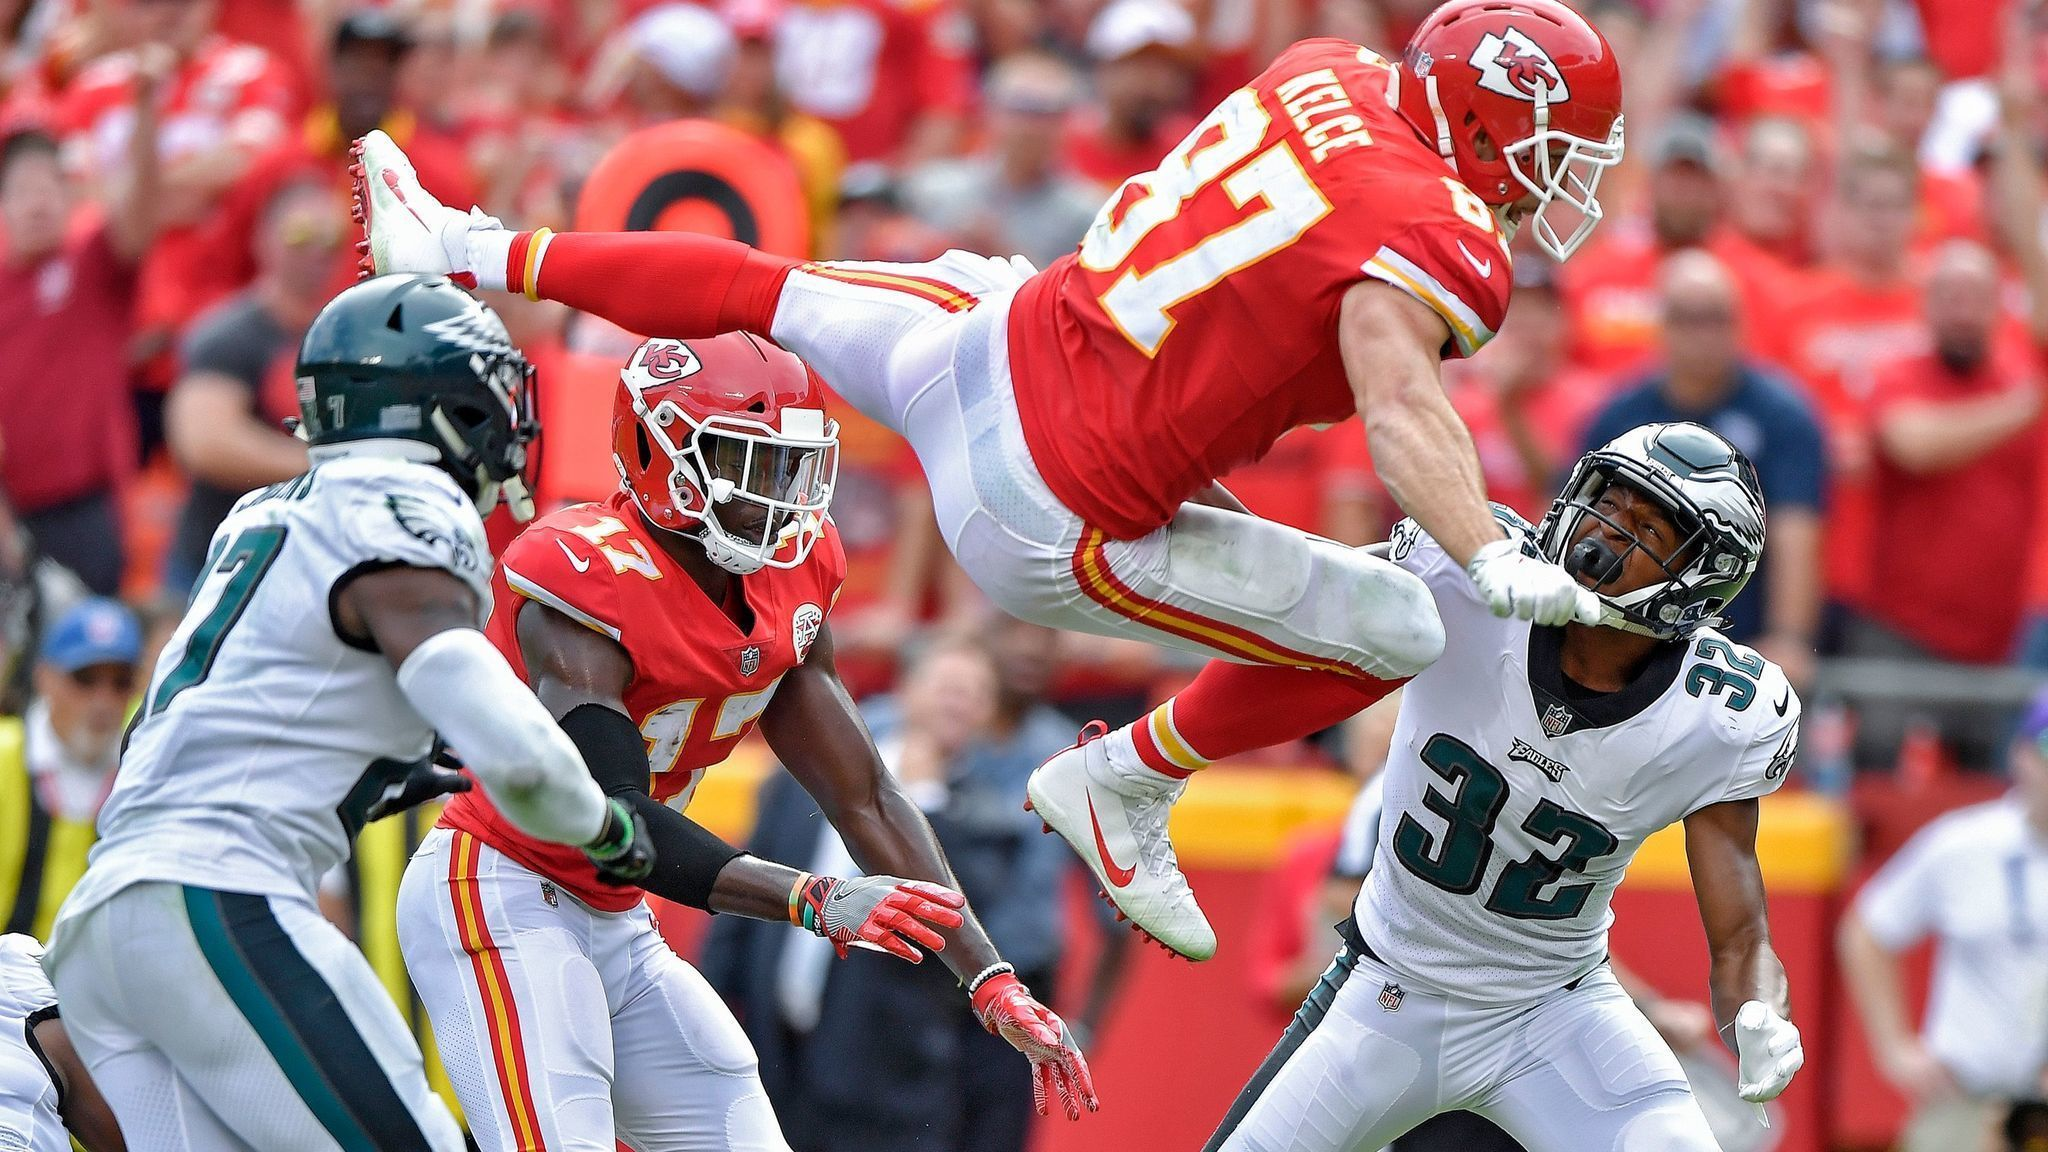 Sd-sp-chargers-usually-lose-to-andy-reid-and-chiefs-20170922